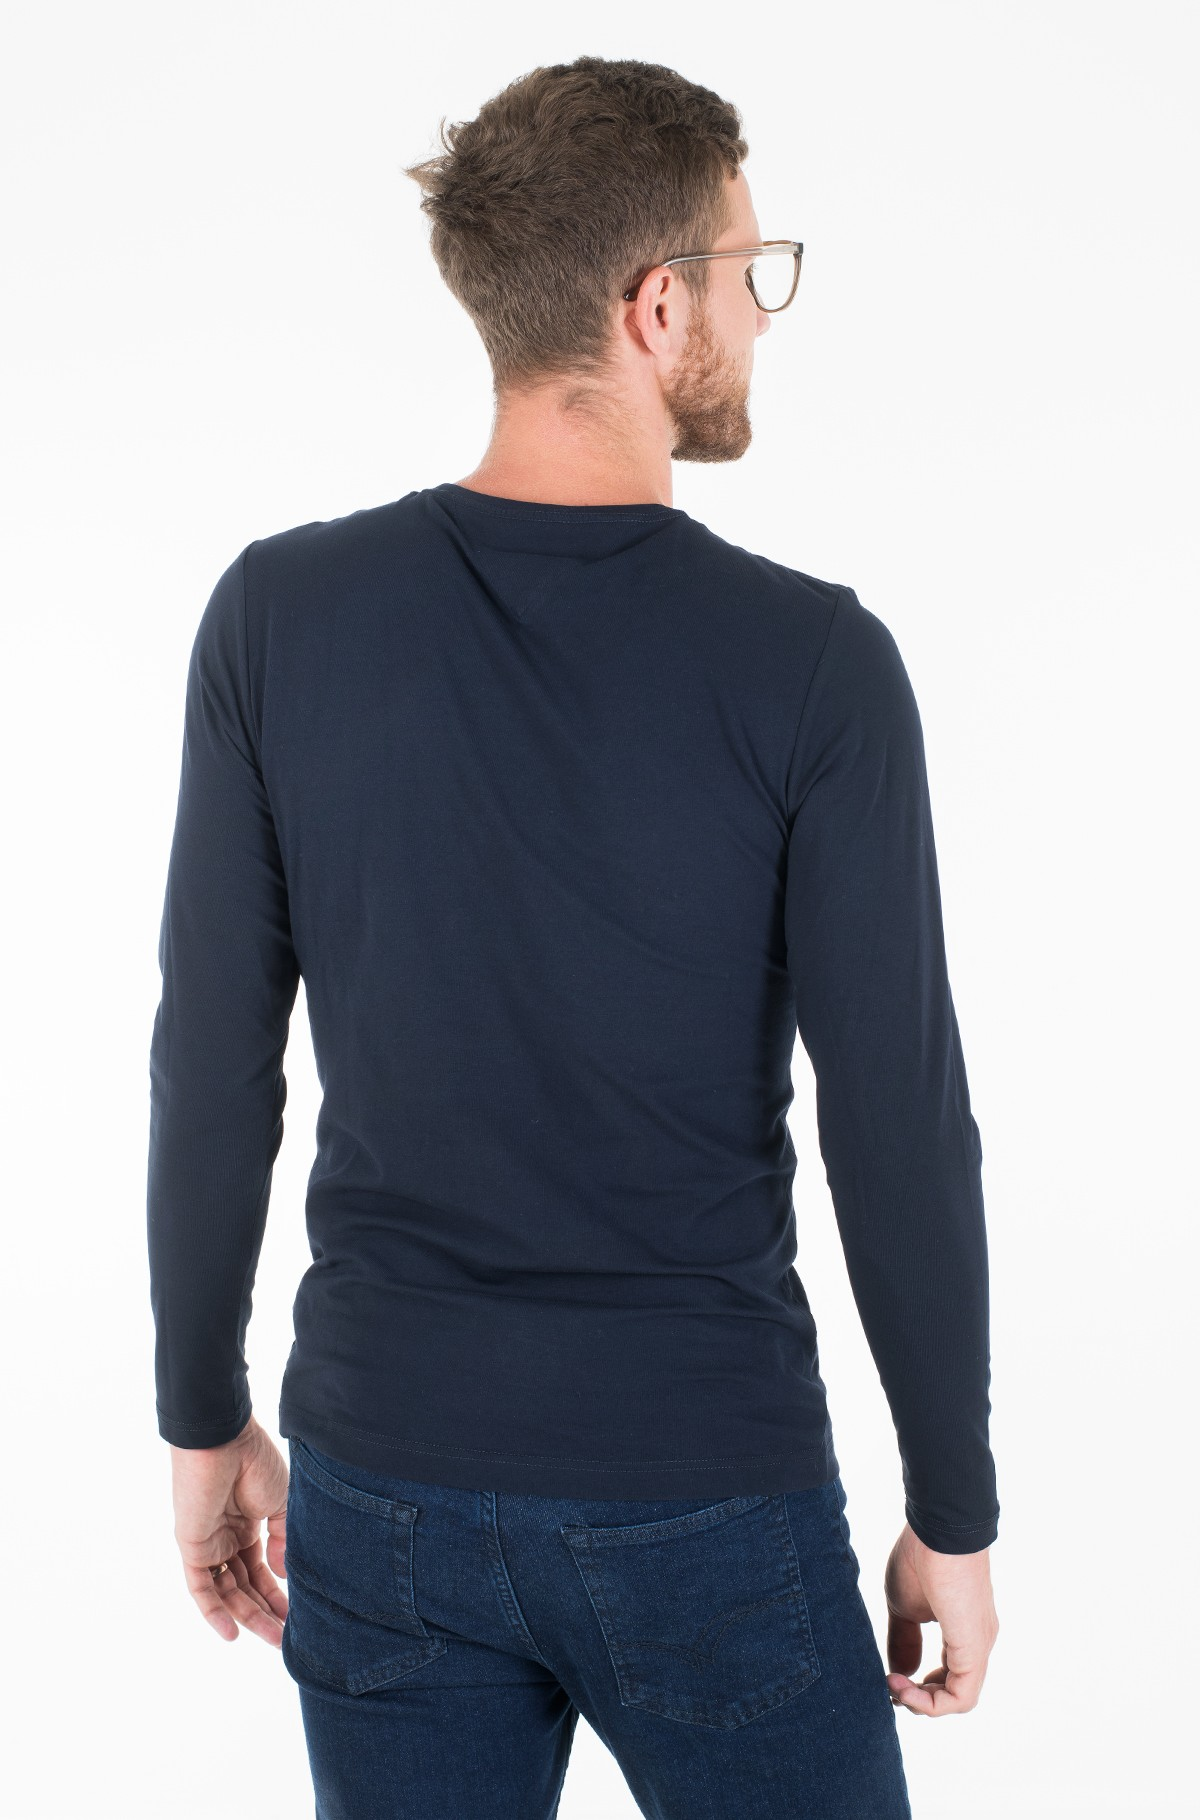 Pikkade käistega t-särk STRETCH SLIM FIT LONG SLEEVE TEE-full-2